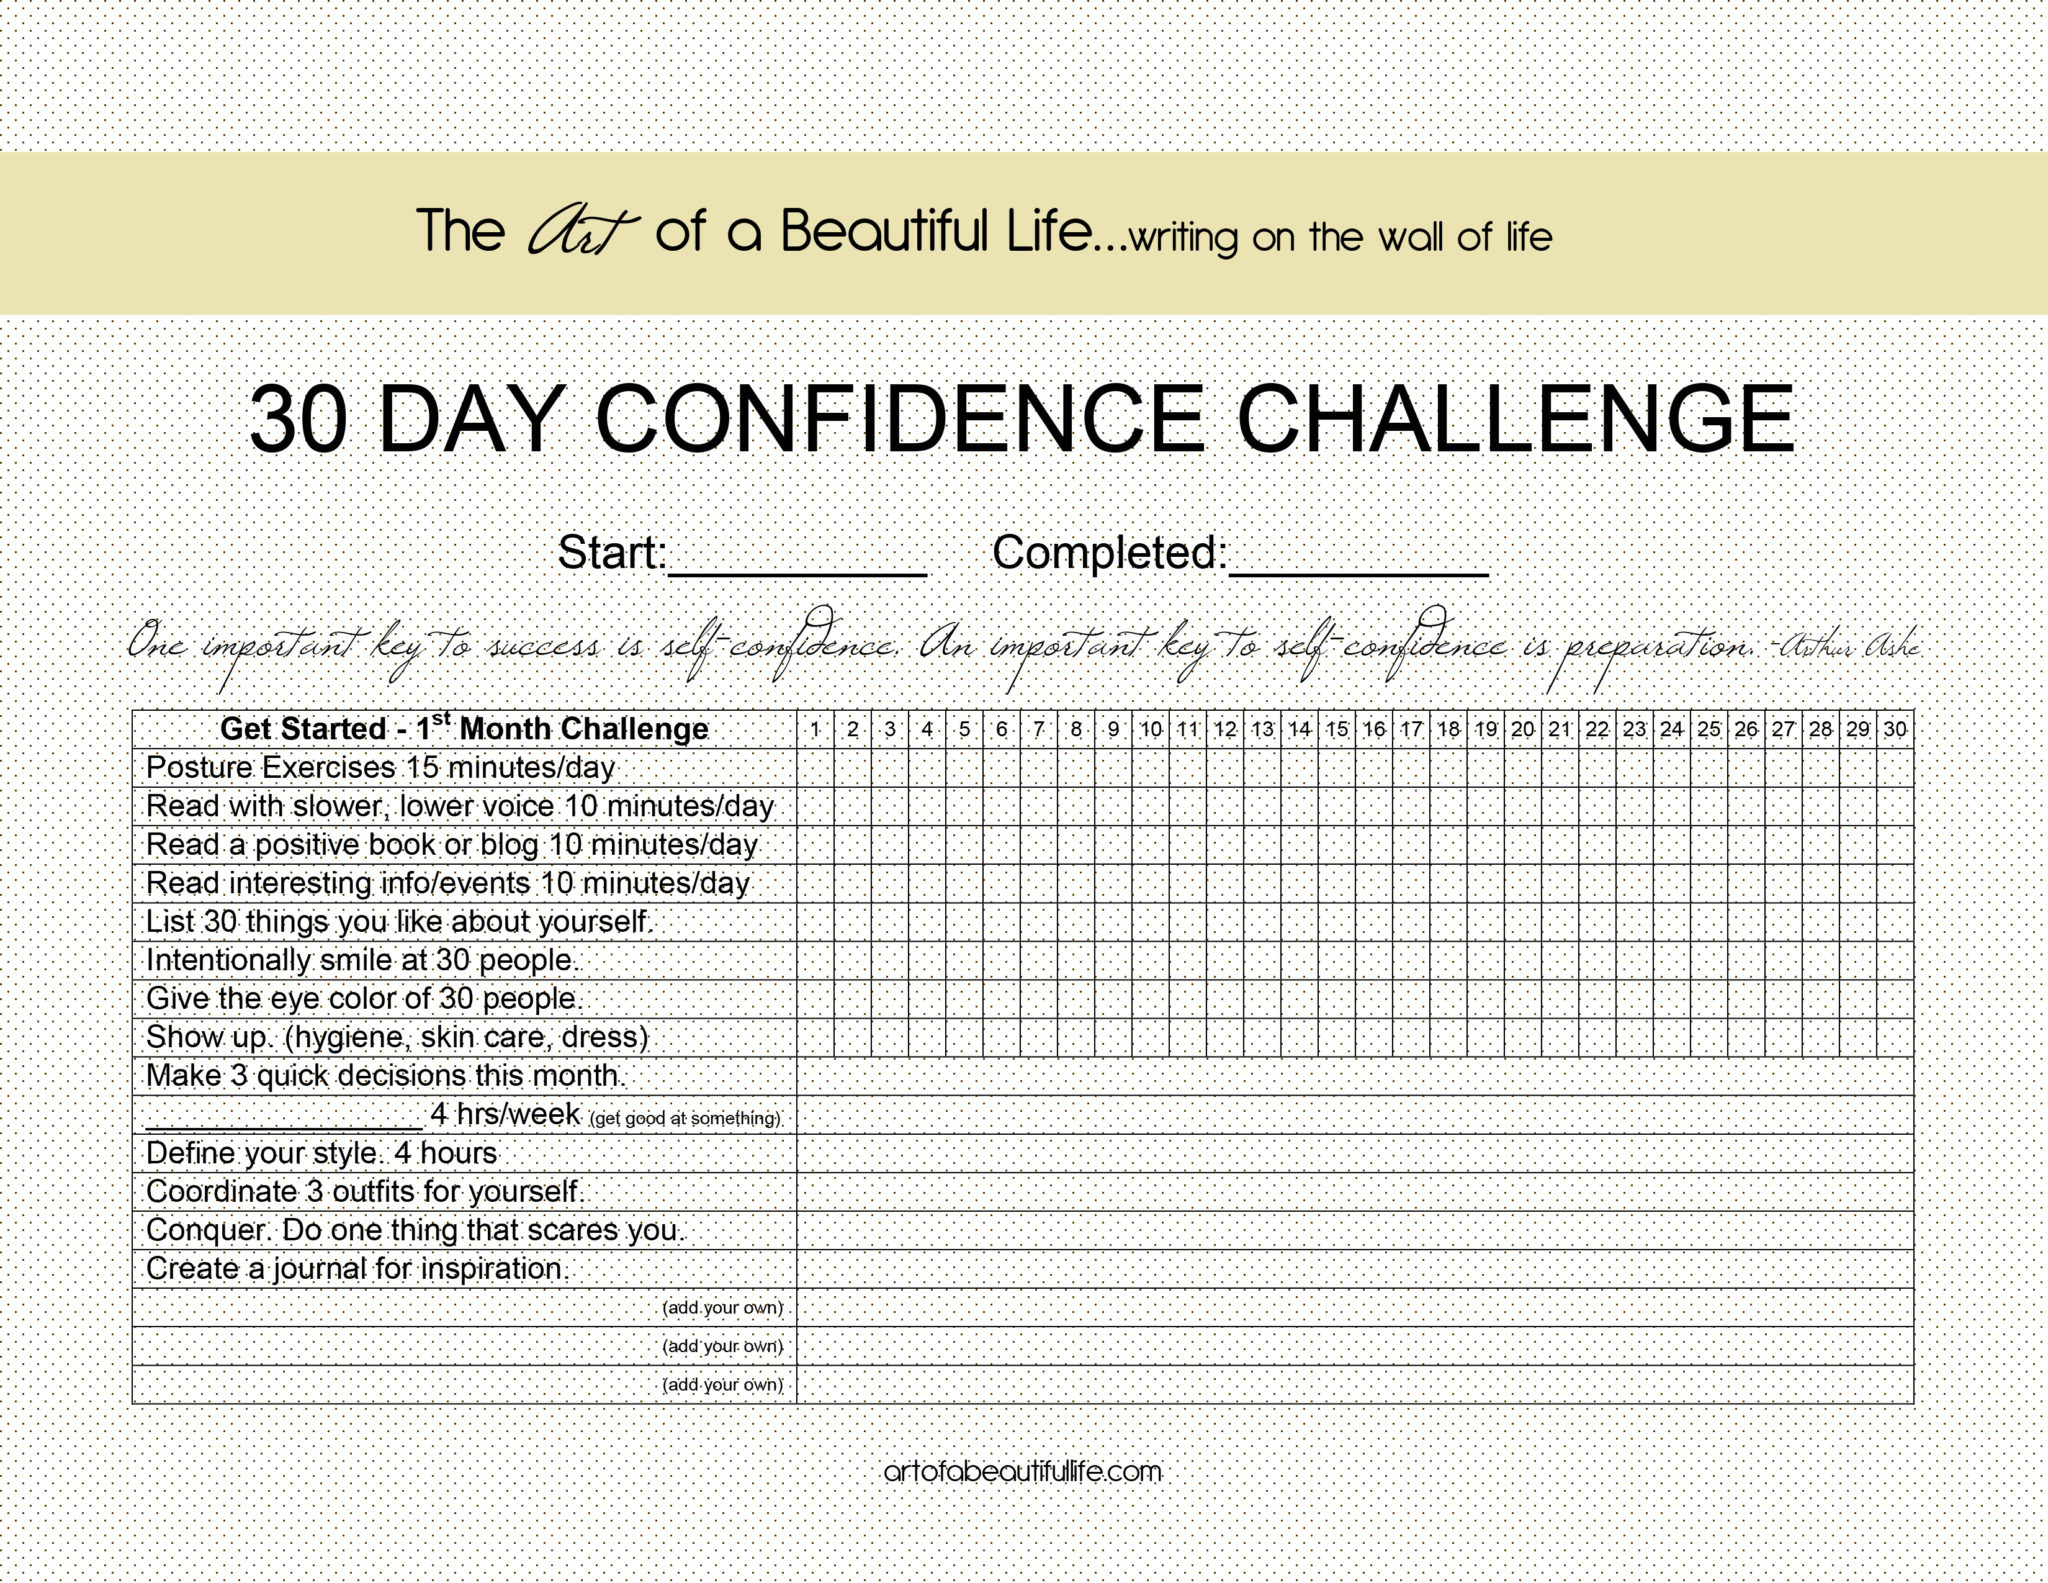 30 Day Challenge - Be Confident - The Art of a Beautiful Life